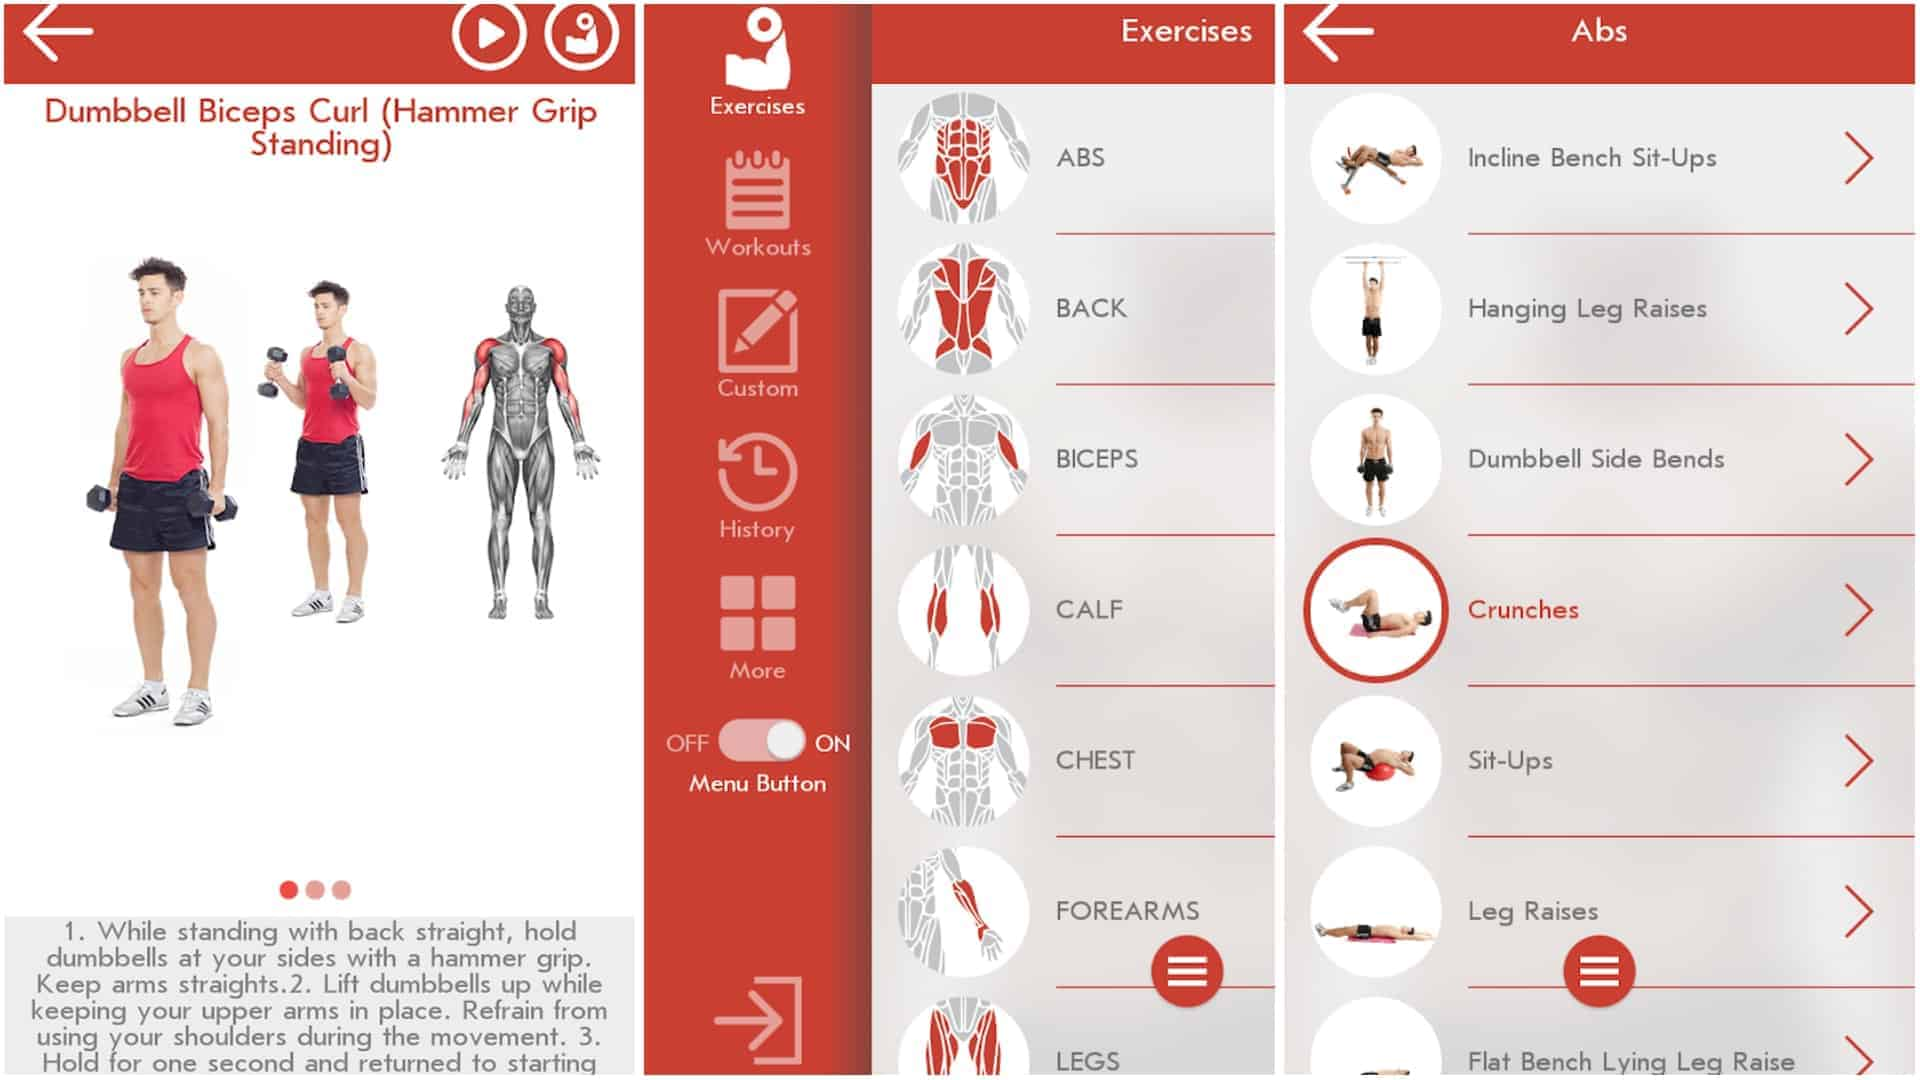 Fitness Bodybuilding app image January 2020